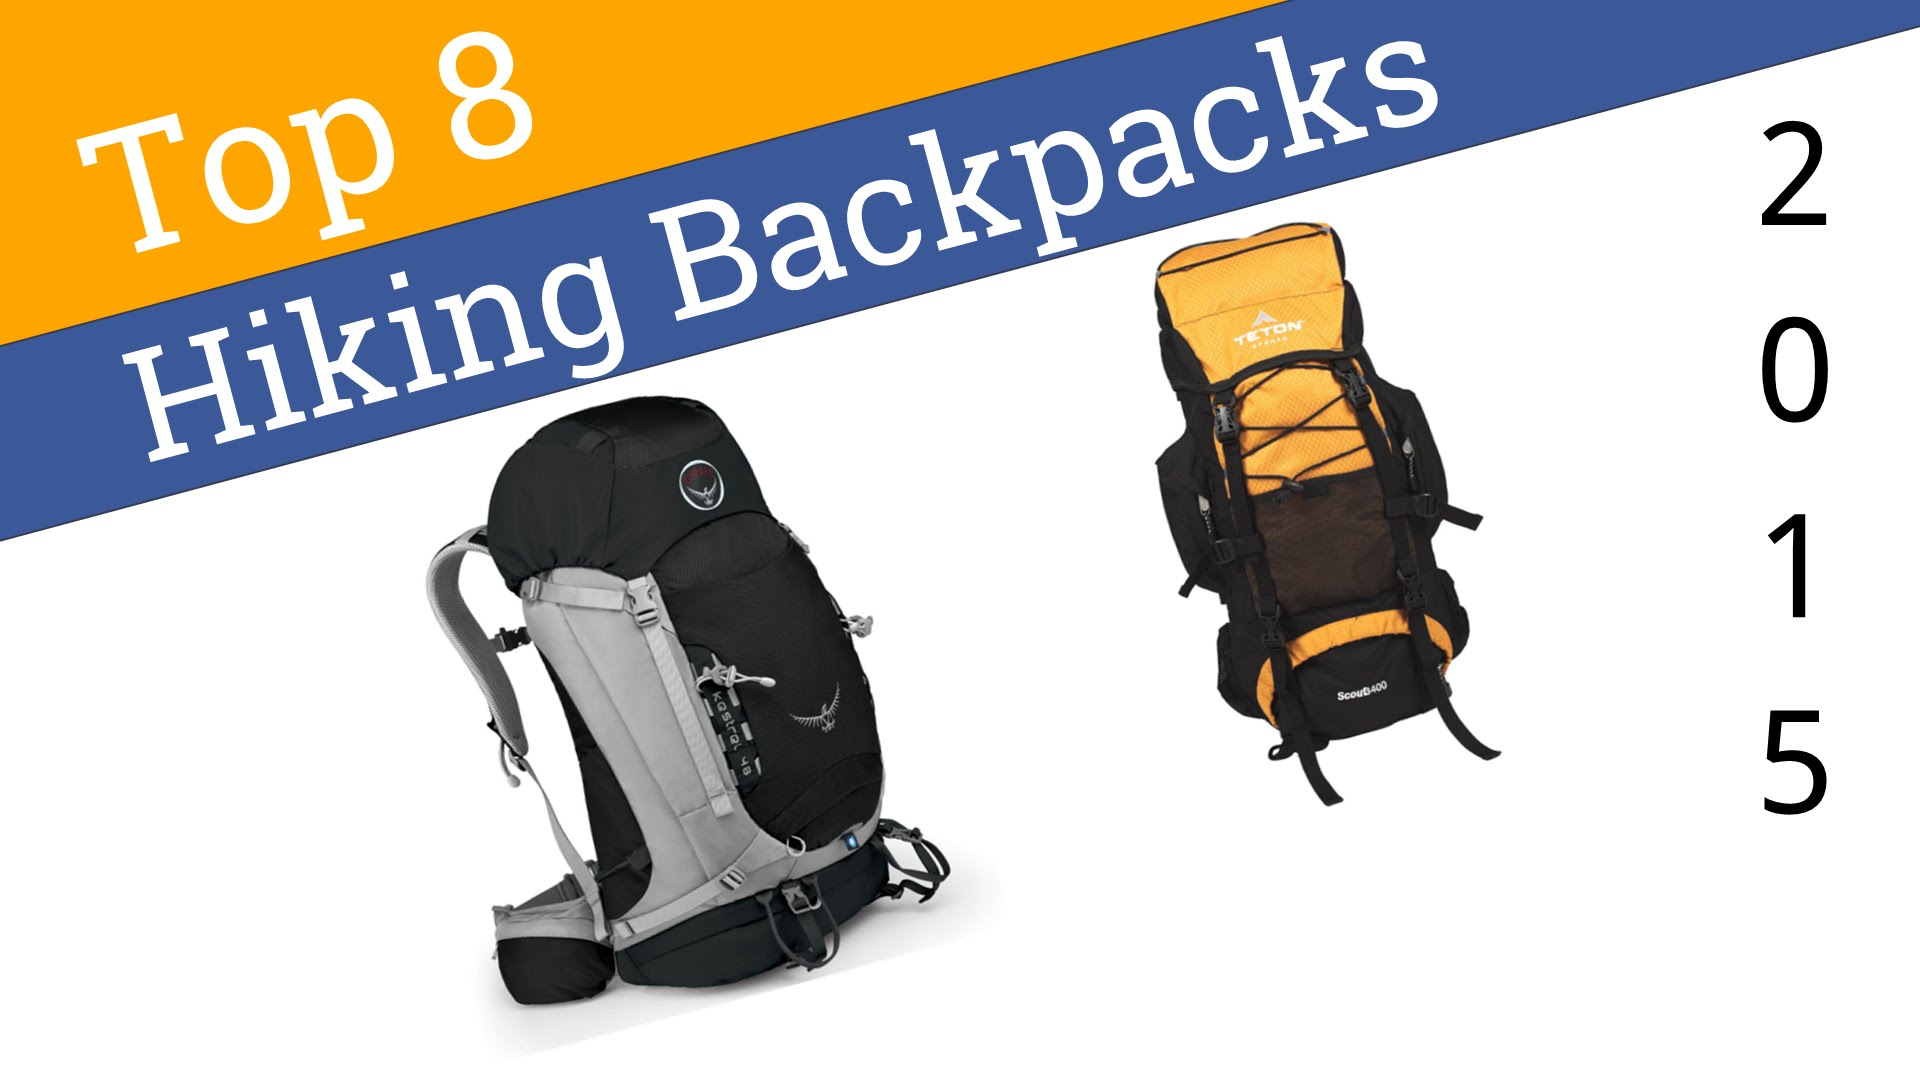 Best Hiking Backpack Brands cZEBkcVh